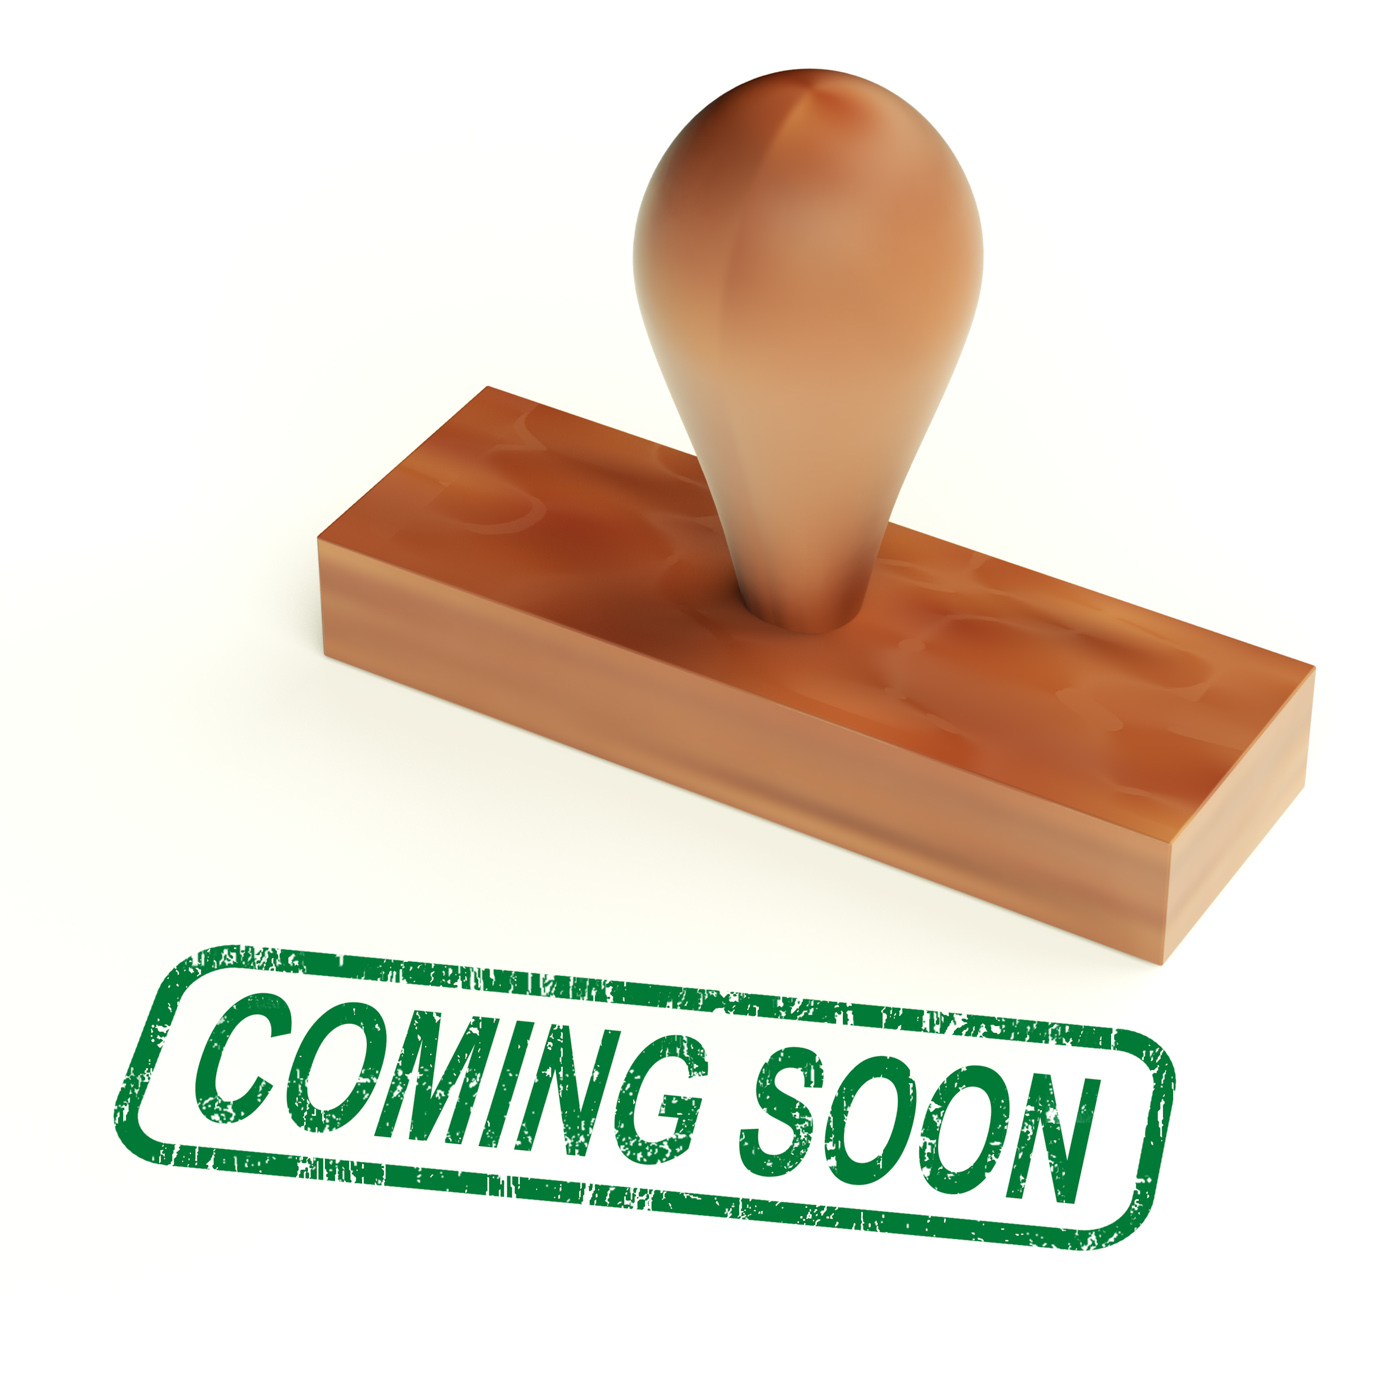 Coming soon rubber stamp showing new product announcement photo